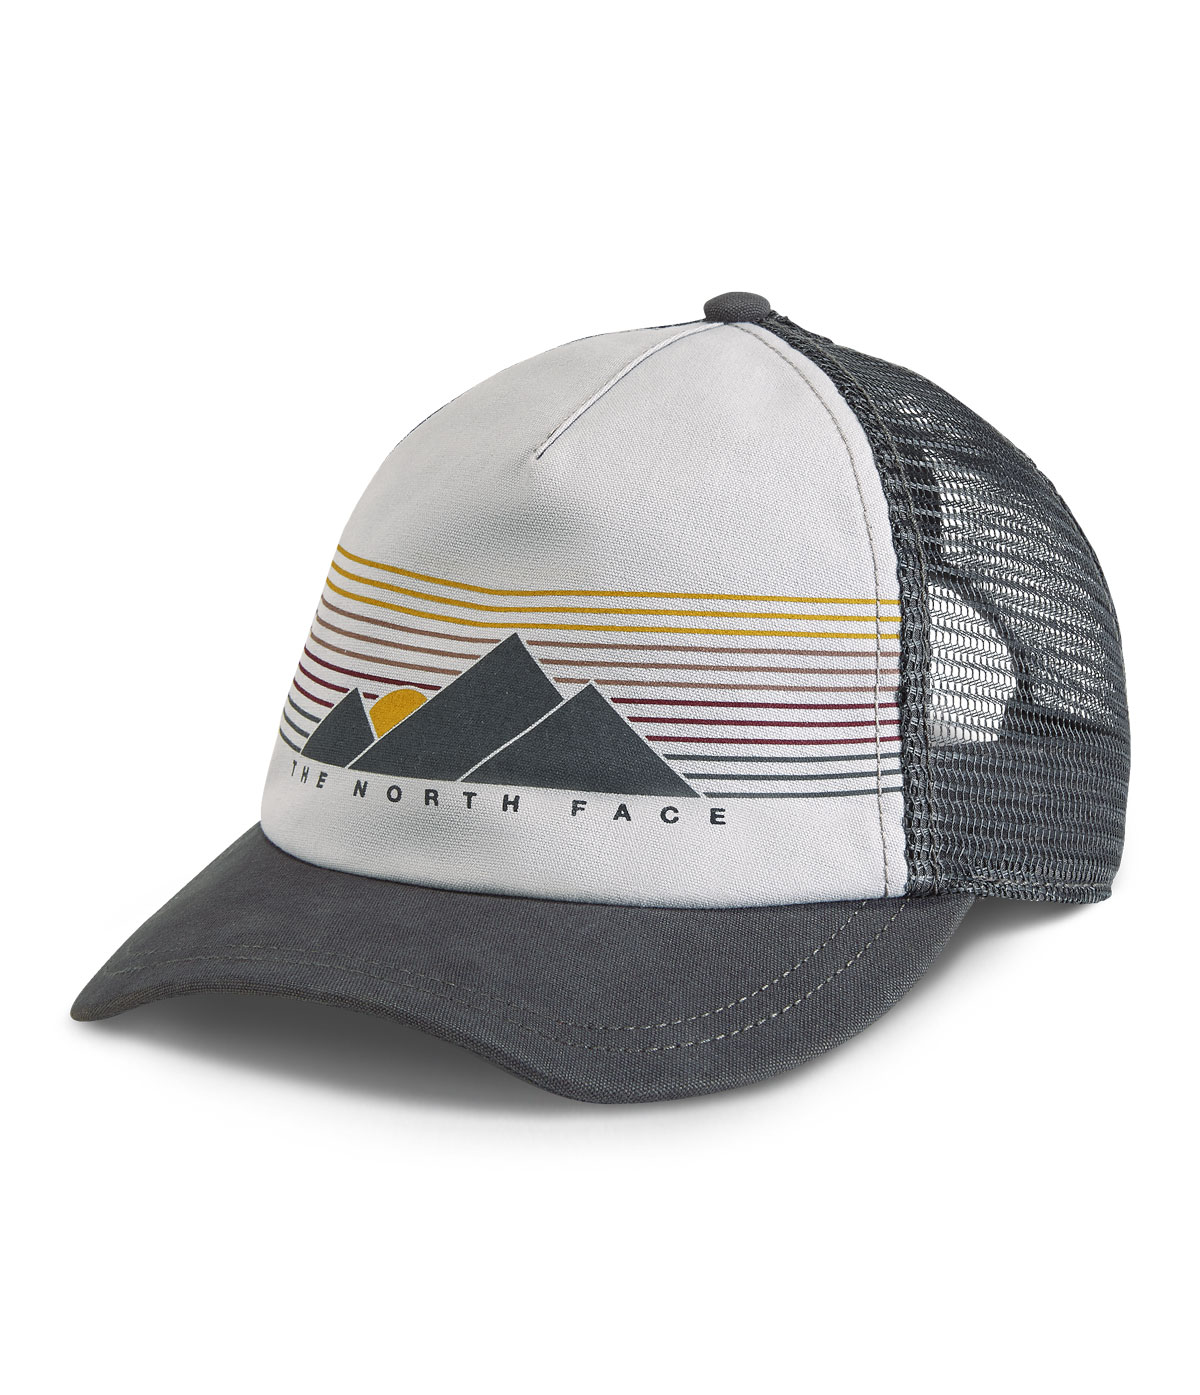 bba27764 The North Face Women's Low Pro Trucker Hat